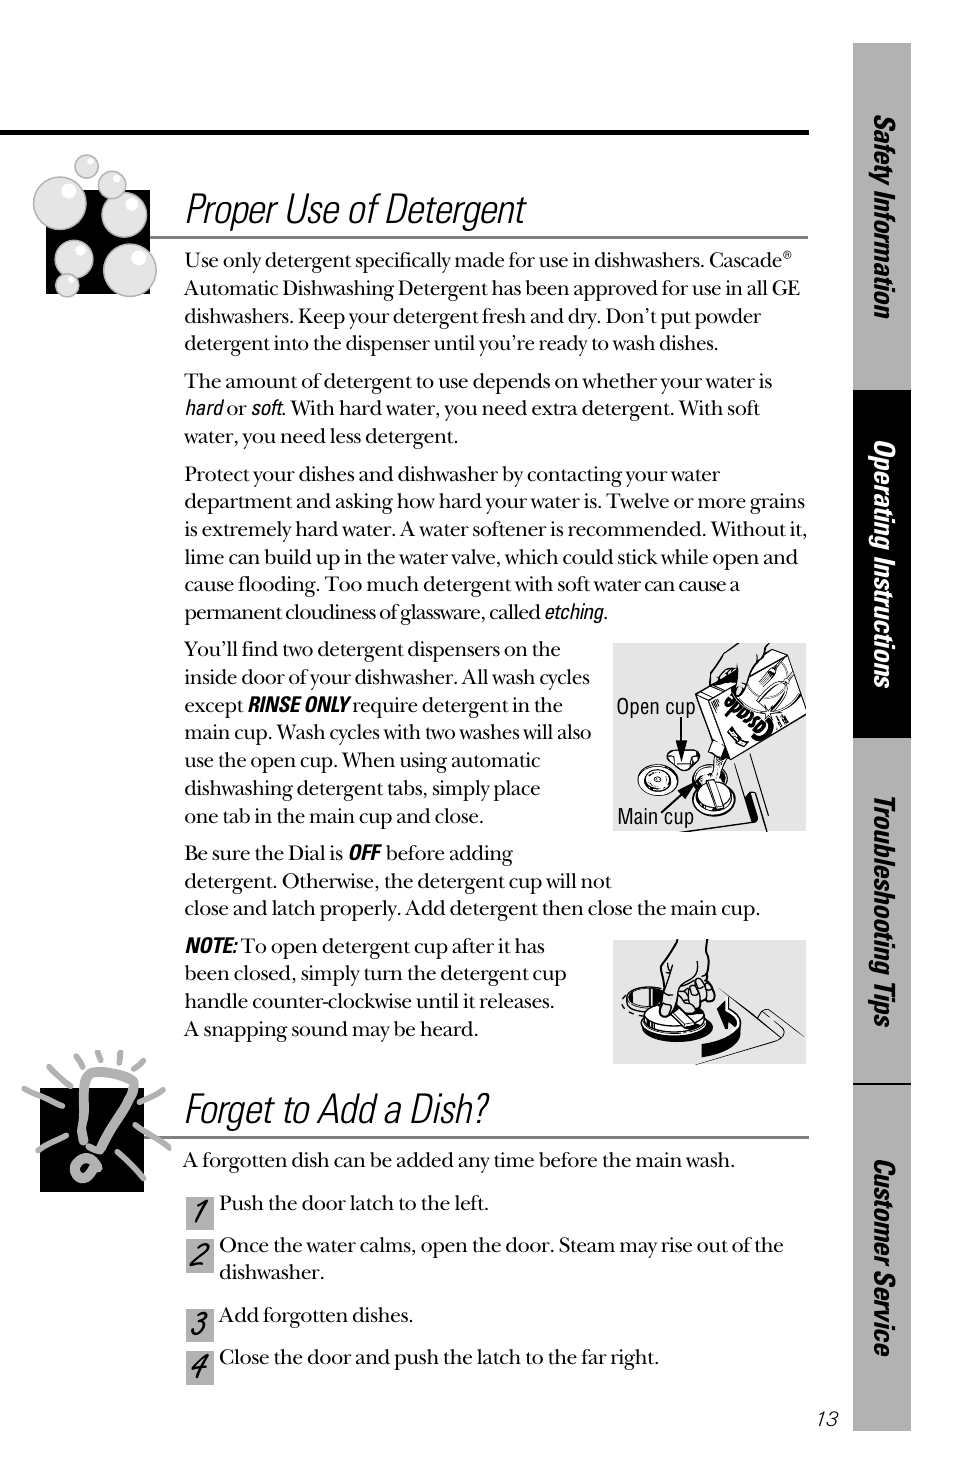 Forget to add a dish, Proper use of detergent   GE nautilus dishwasher User  Manual   Page 13 / 32